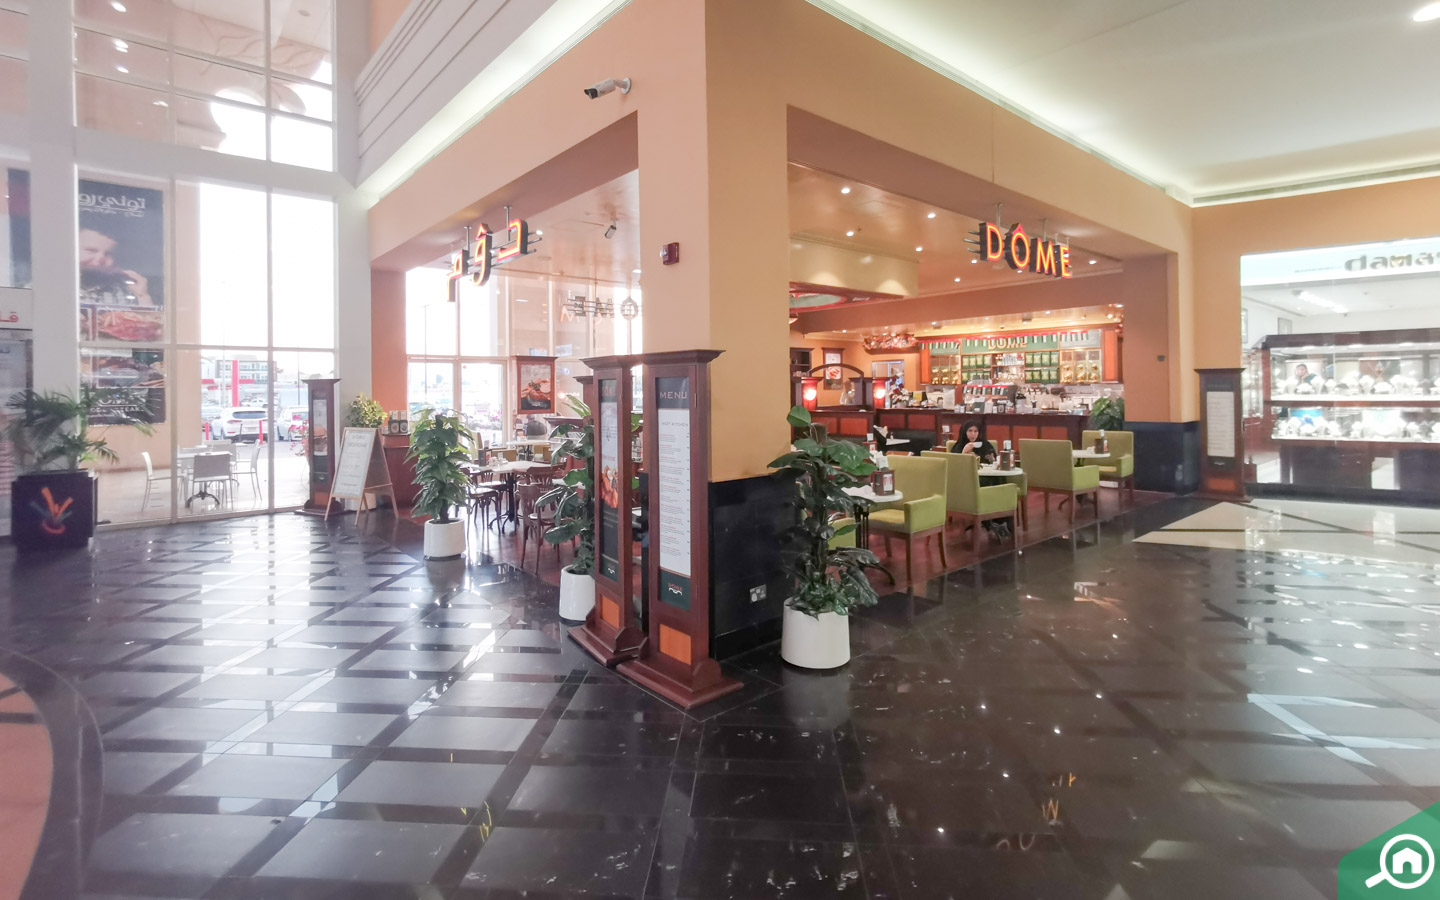 Dome Cafe at Arabian Center food court